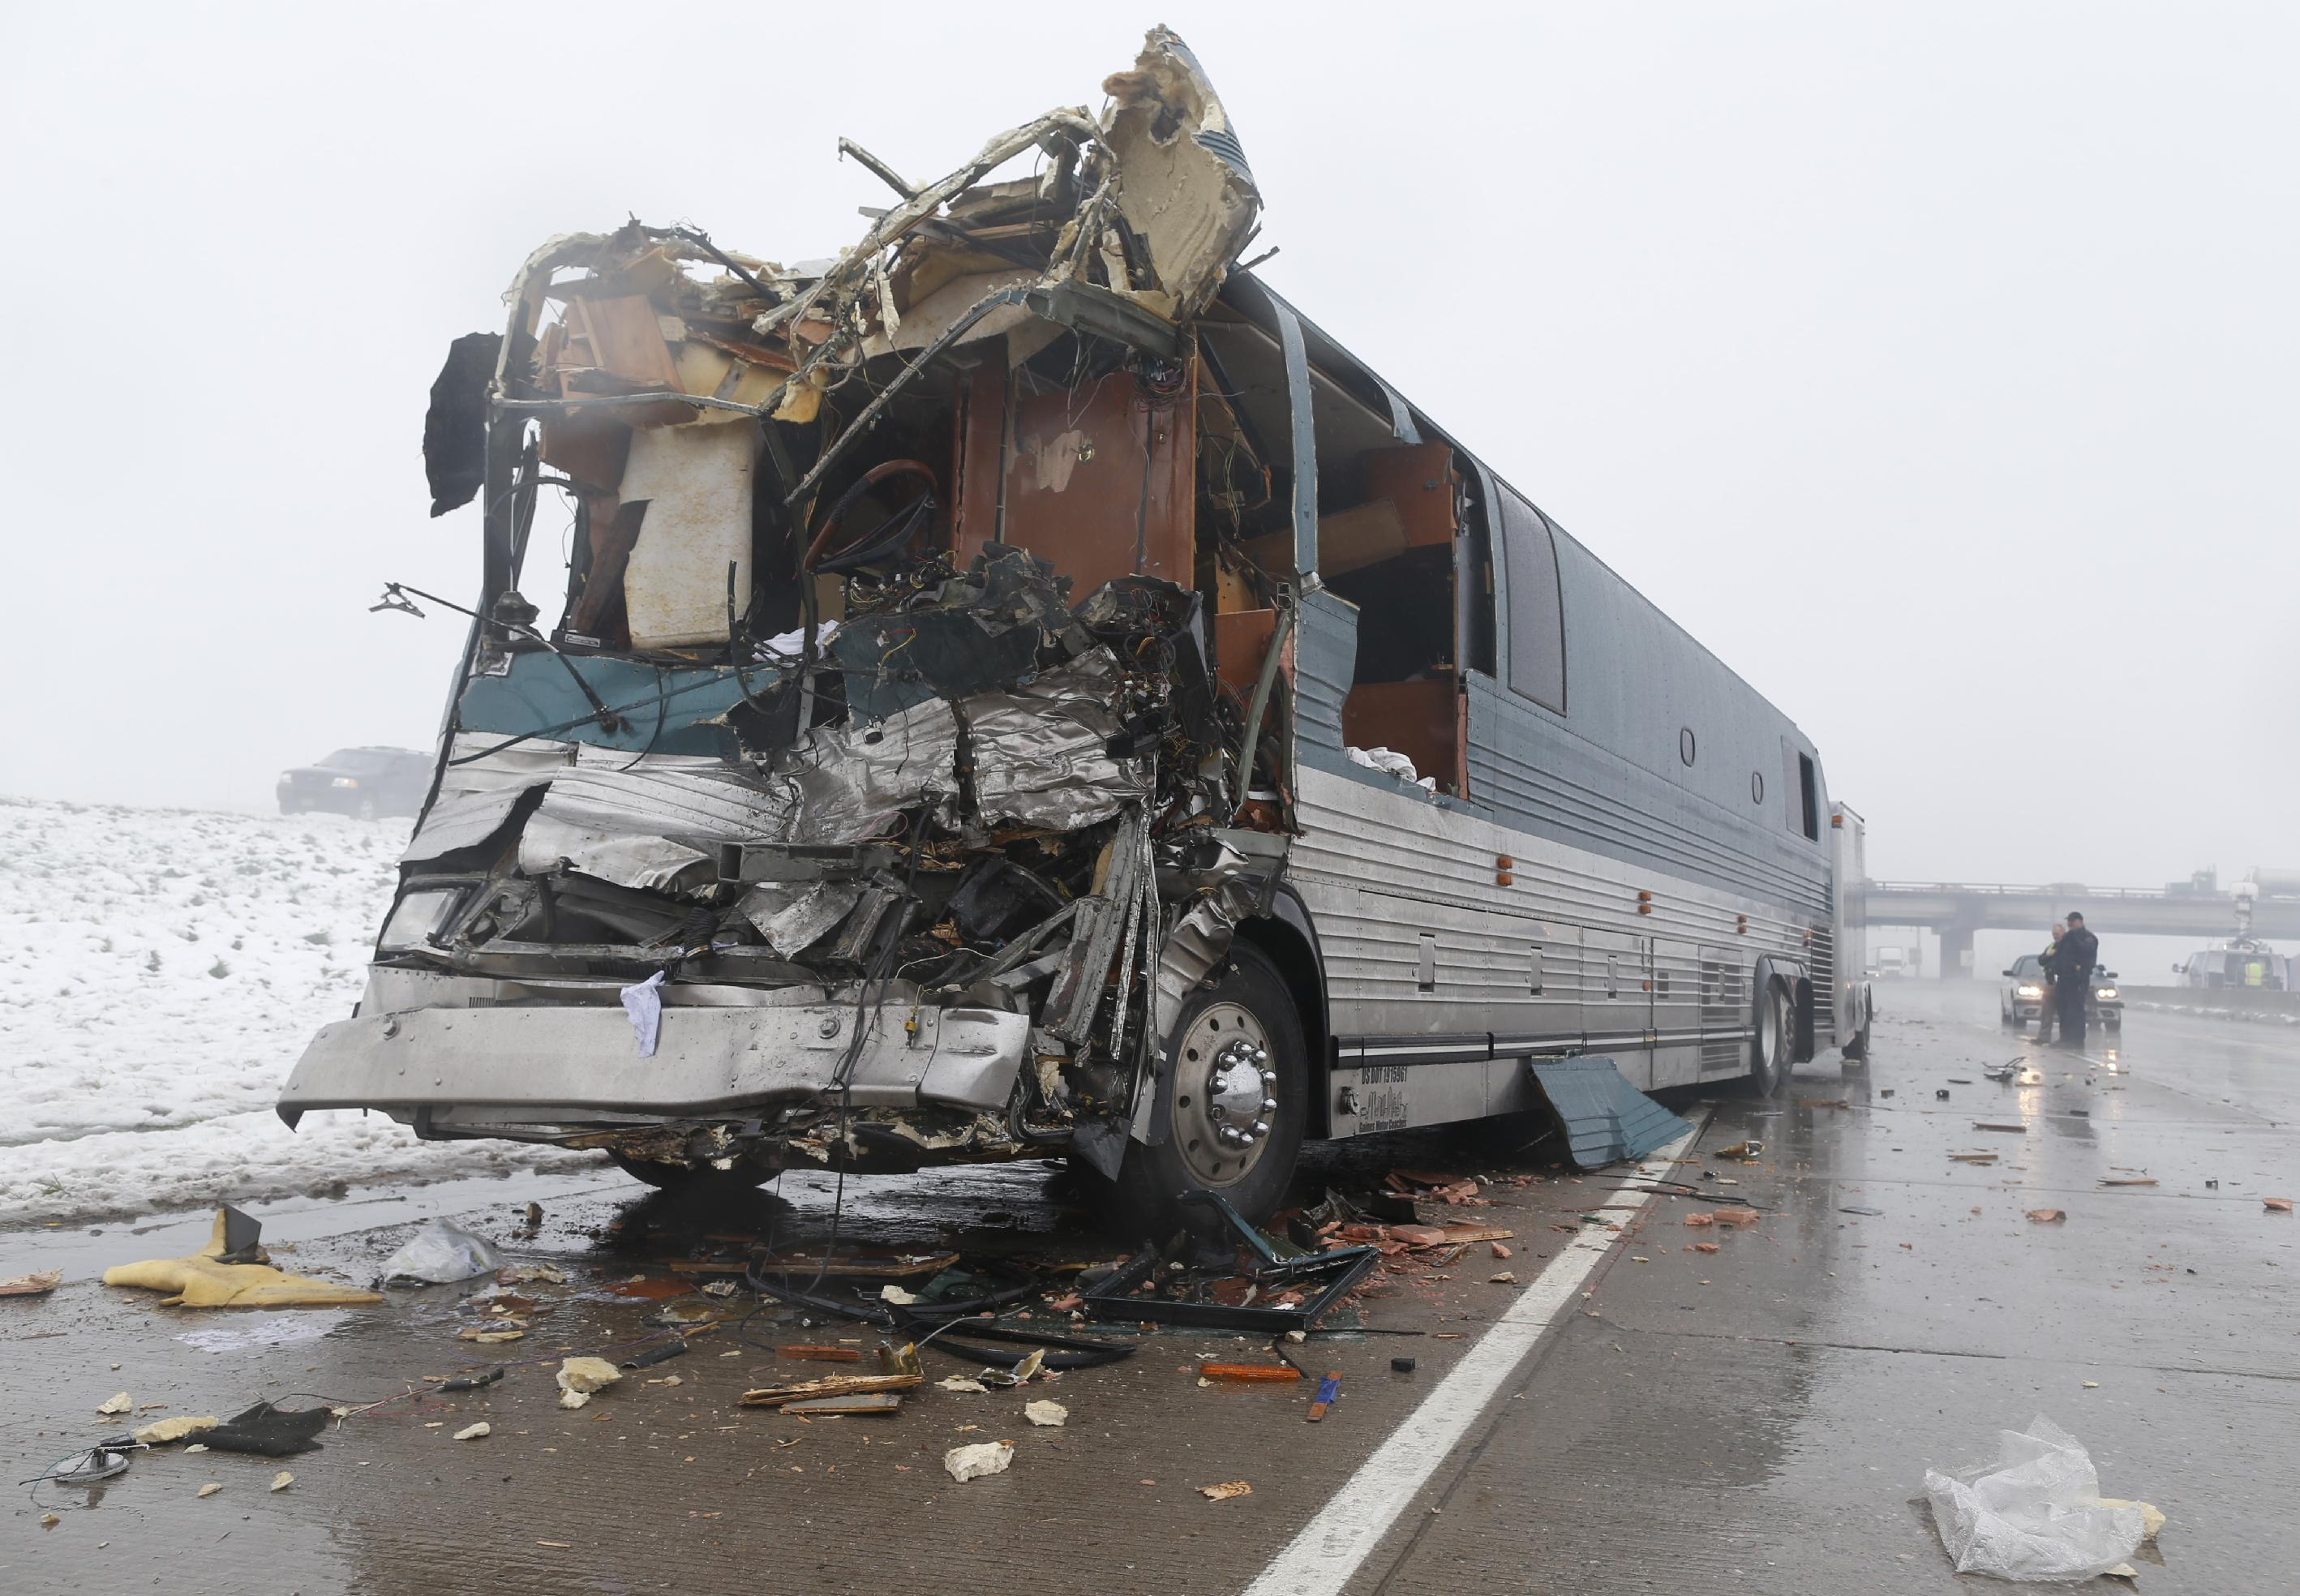 12 hurt in Denver-area crash involving tour buses amid fog